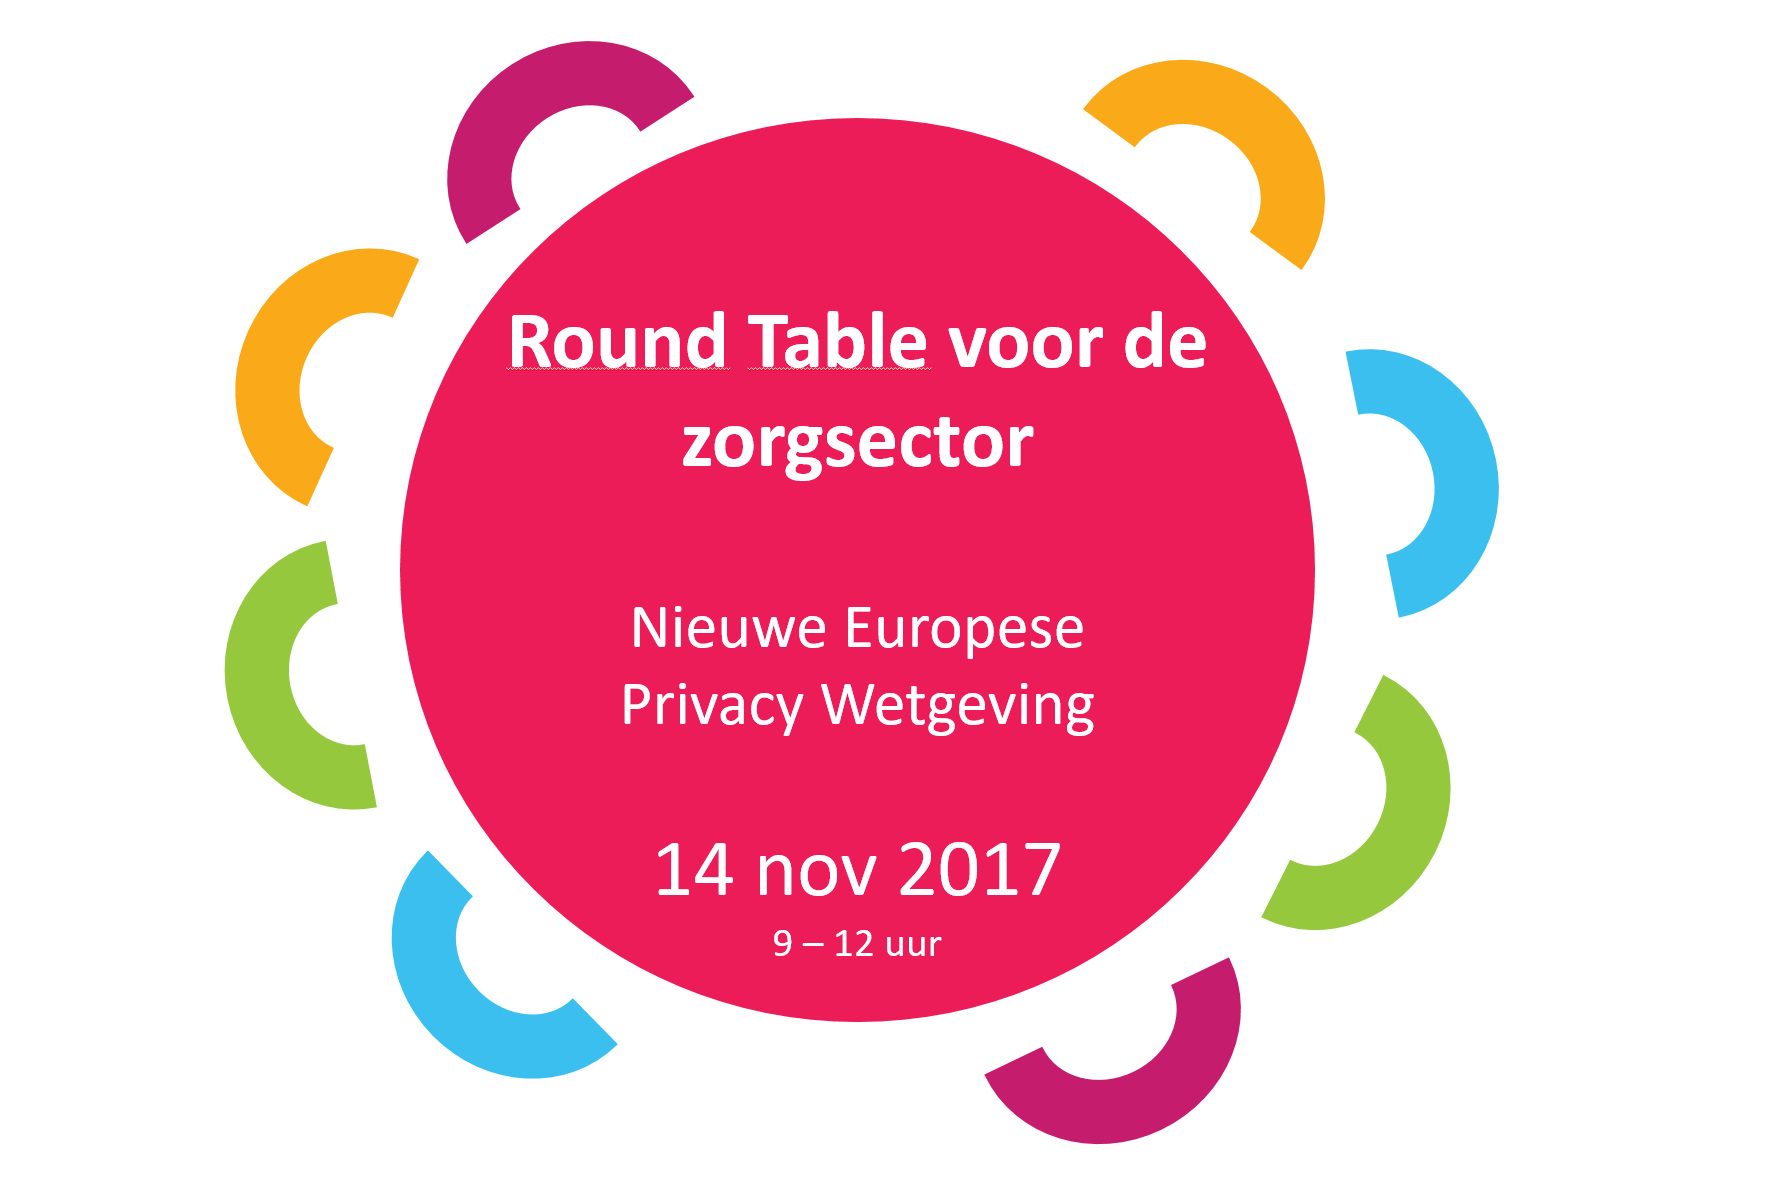 Caase.com round table AVG GDPR Zorg